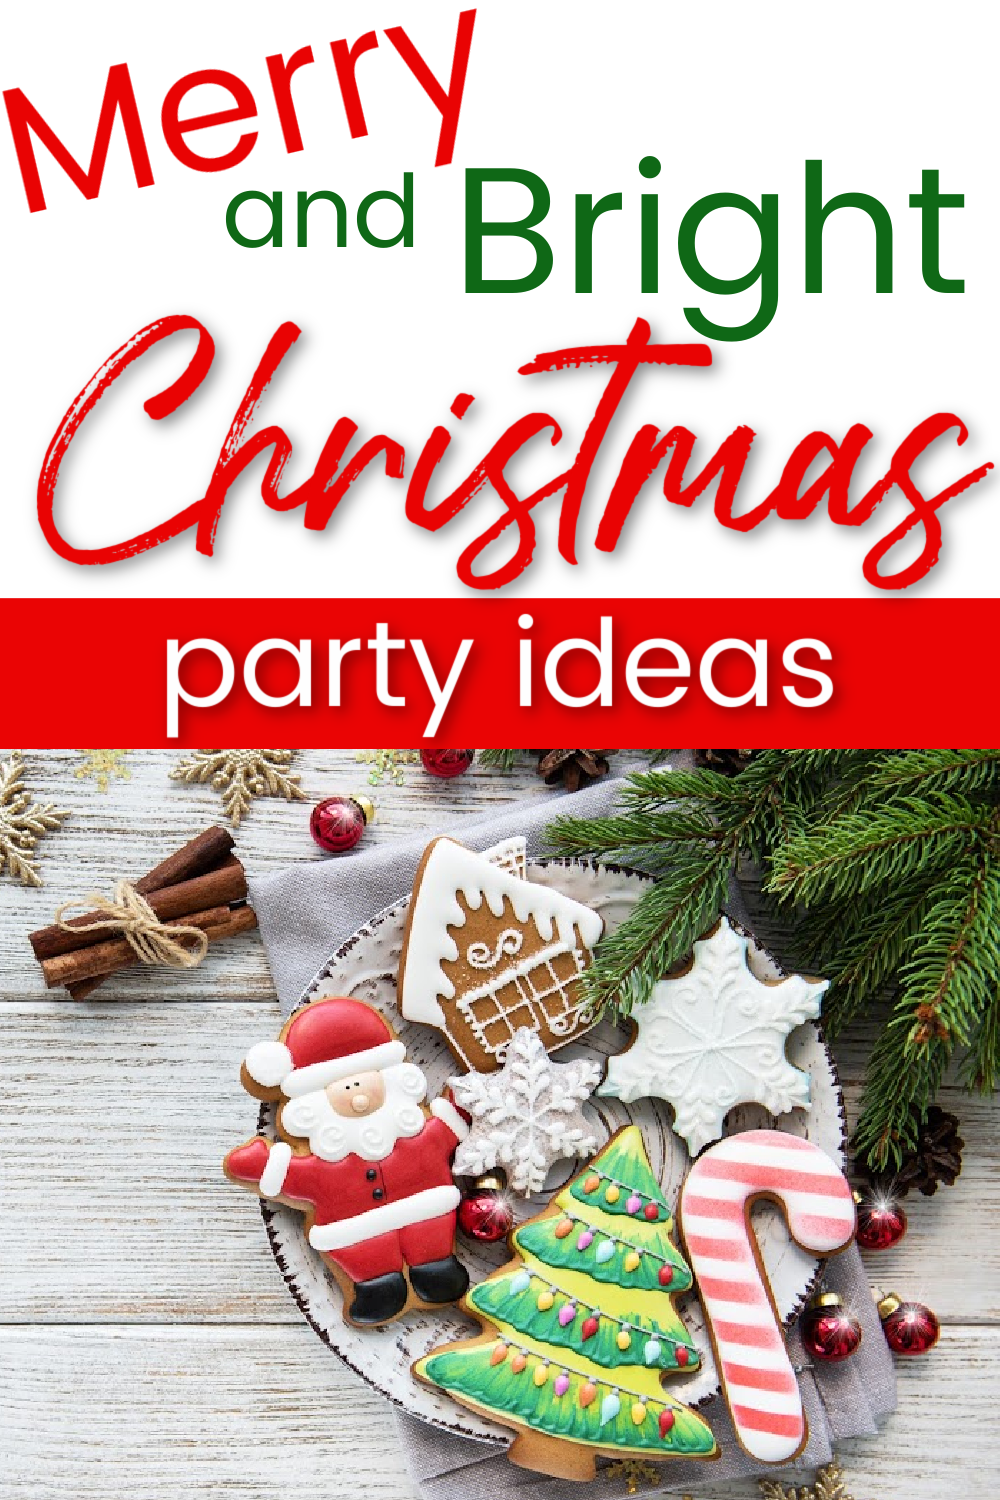 Merry and Bright Christmas Party Ideas Pin